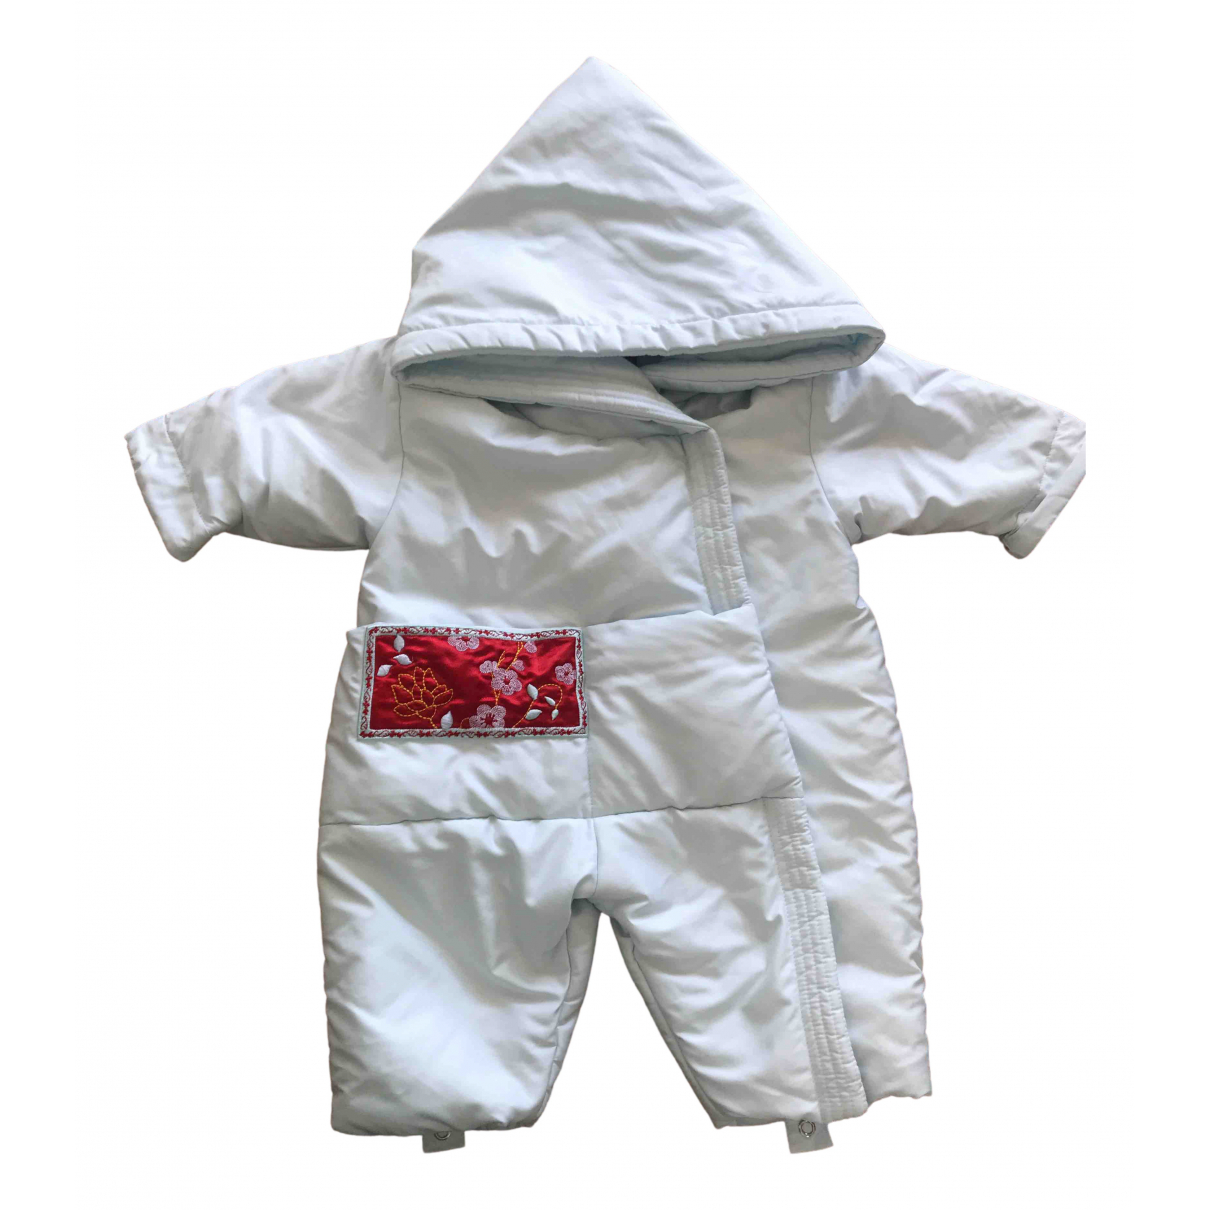 Kenzo \N White Outfits for Kids 6 months - up to 67cm FR